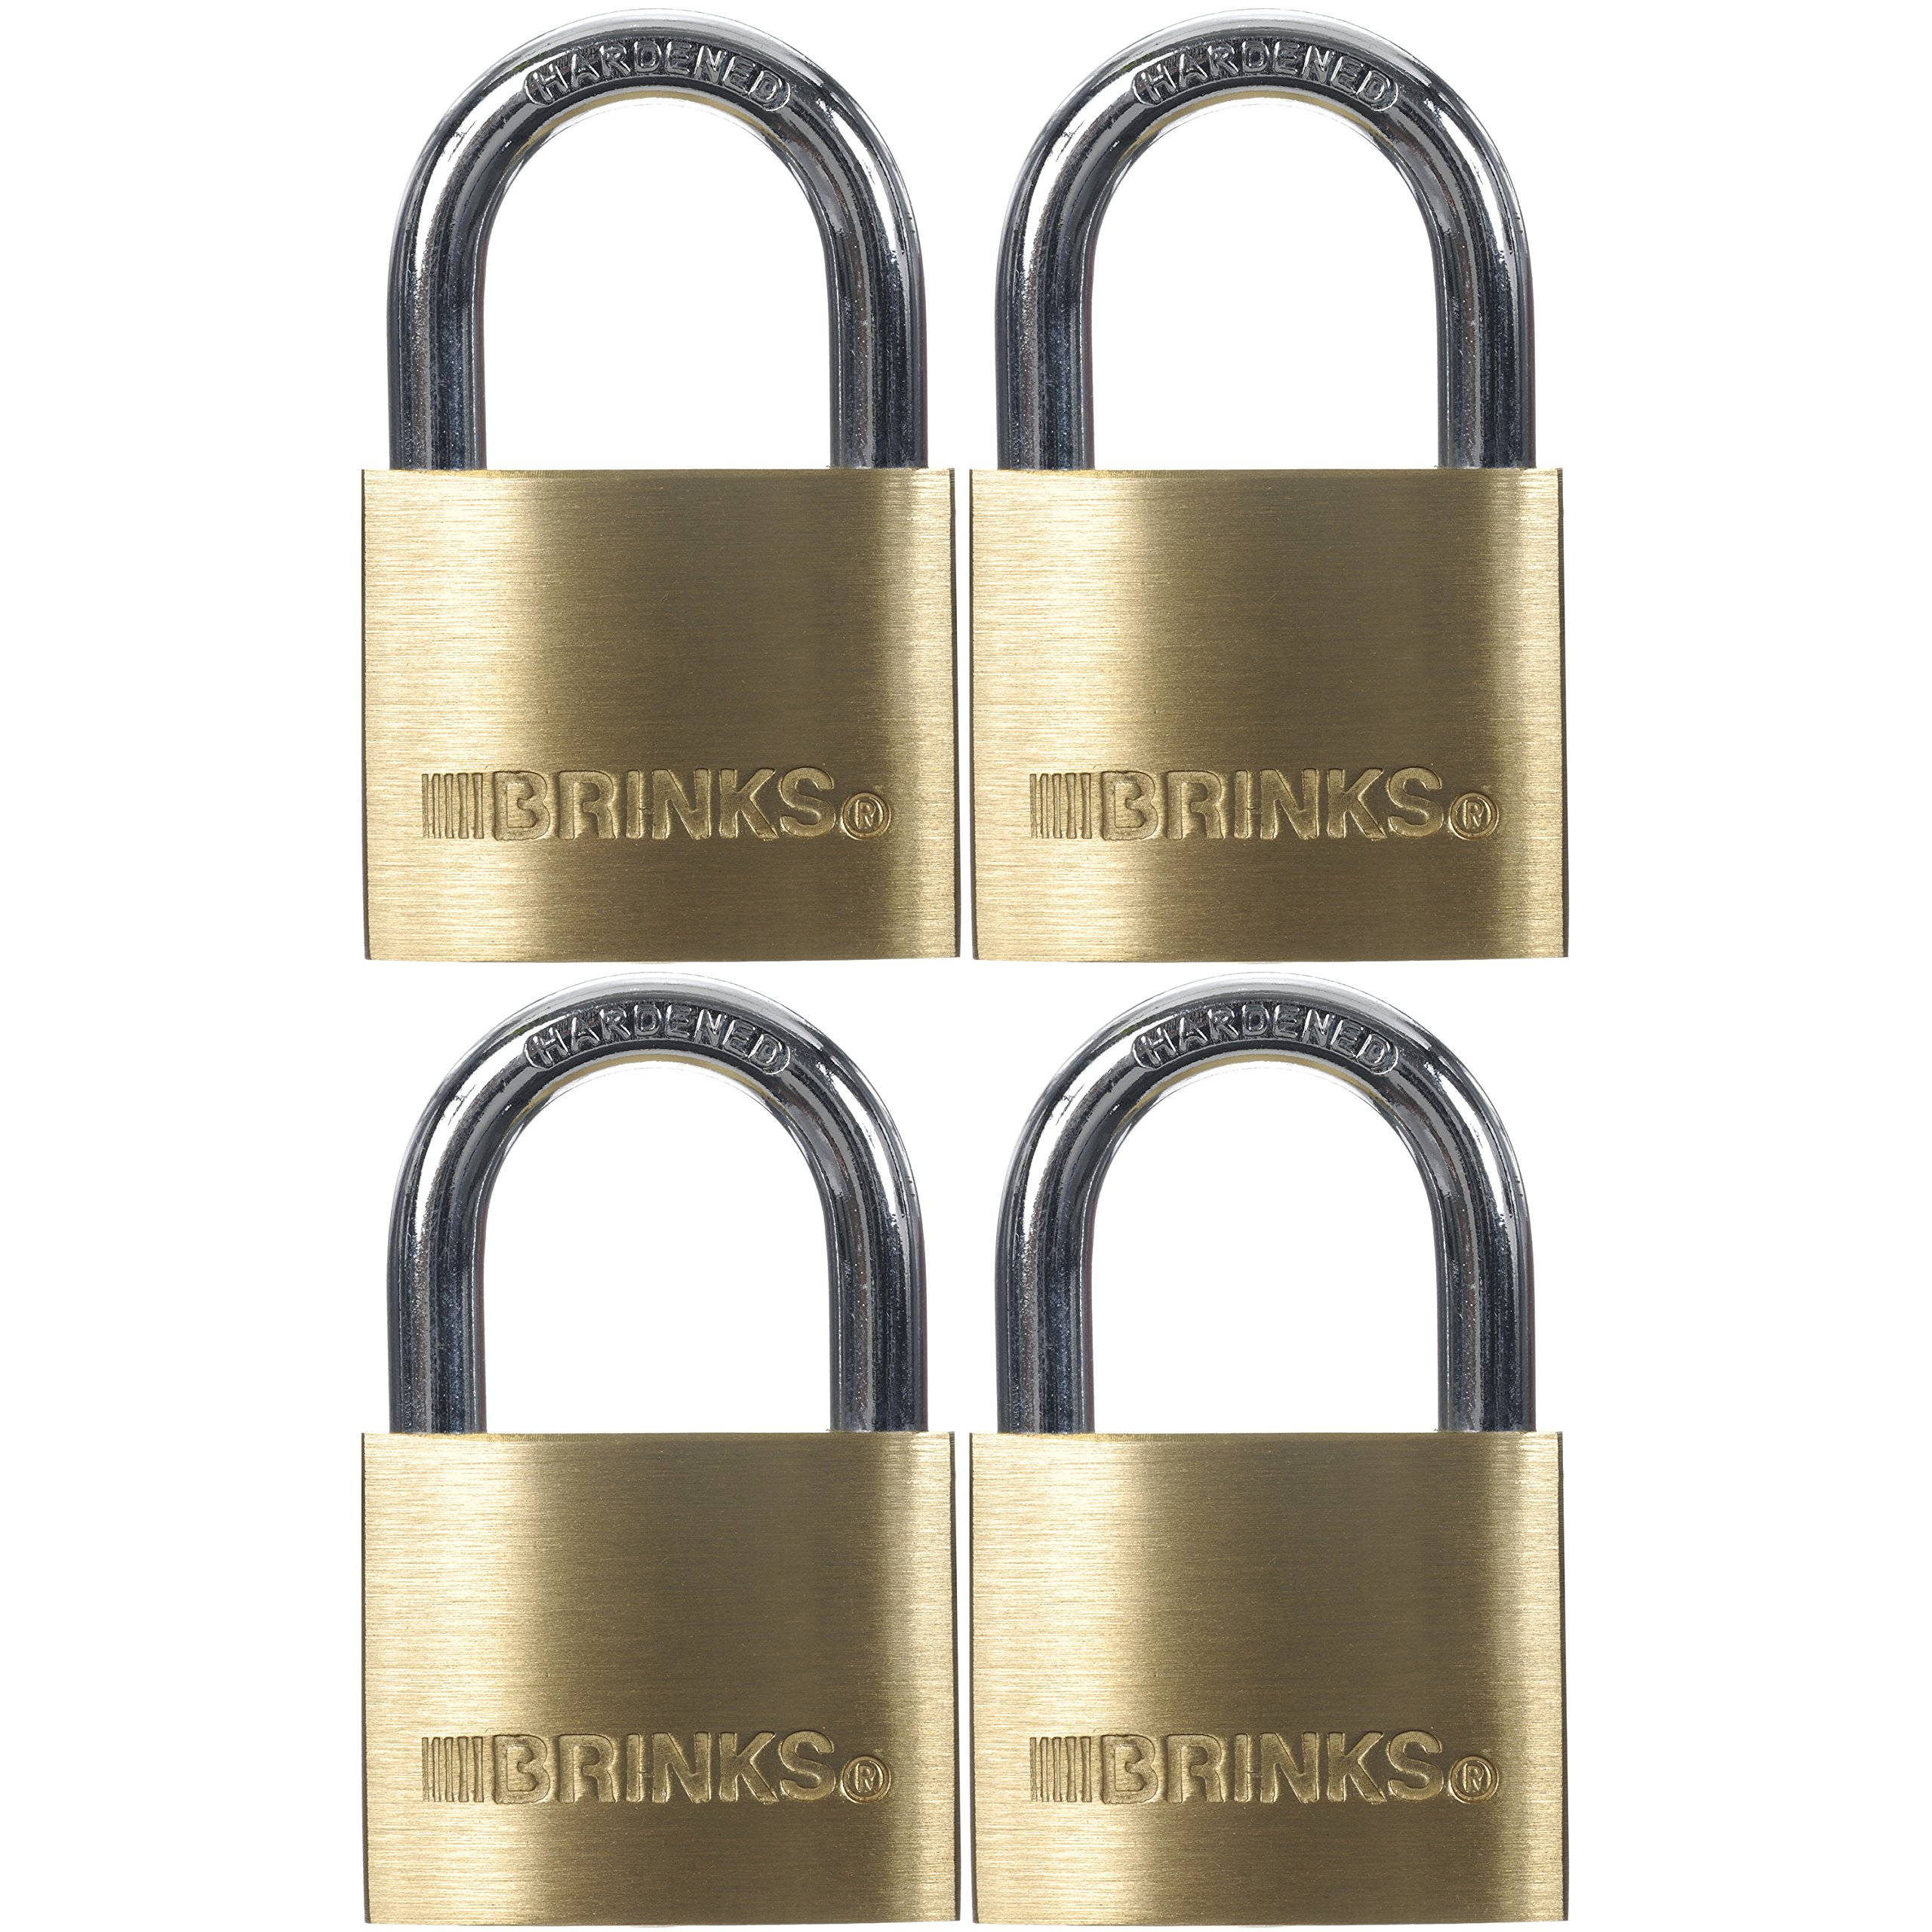 Brinks 171-40401 40mm Solid Brass Padlock, 4 Pack by Keeper